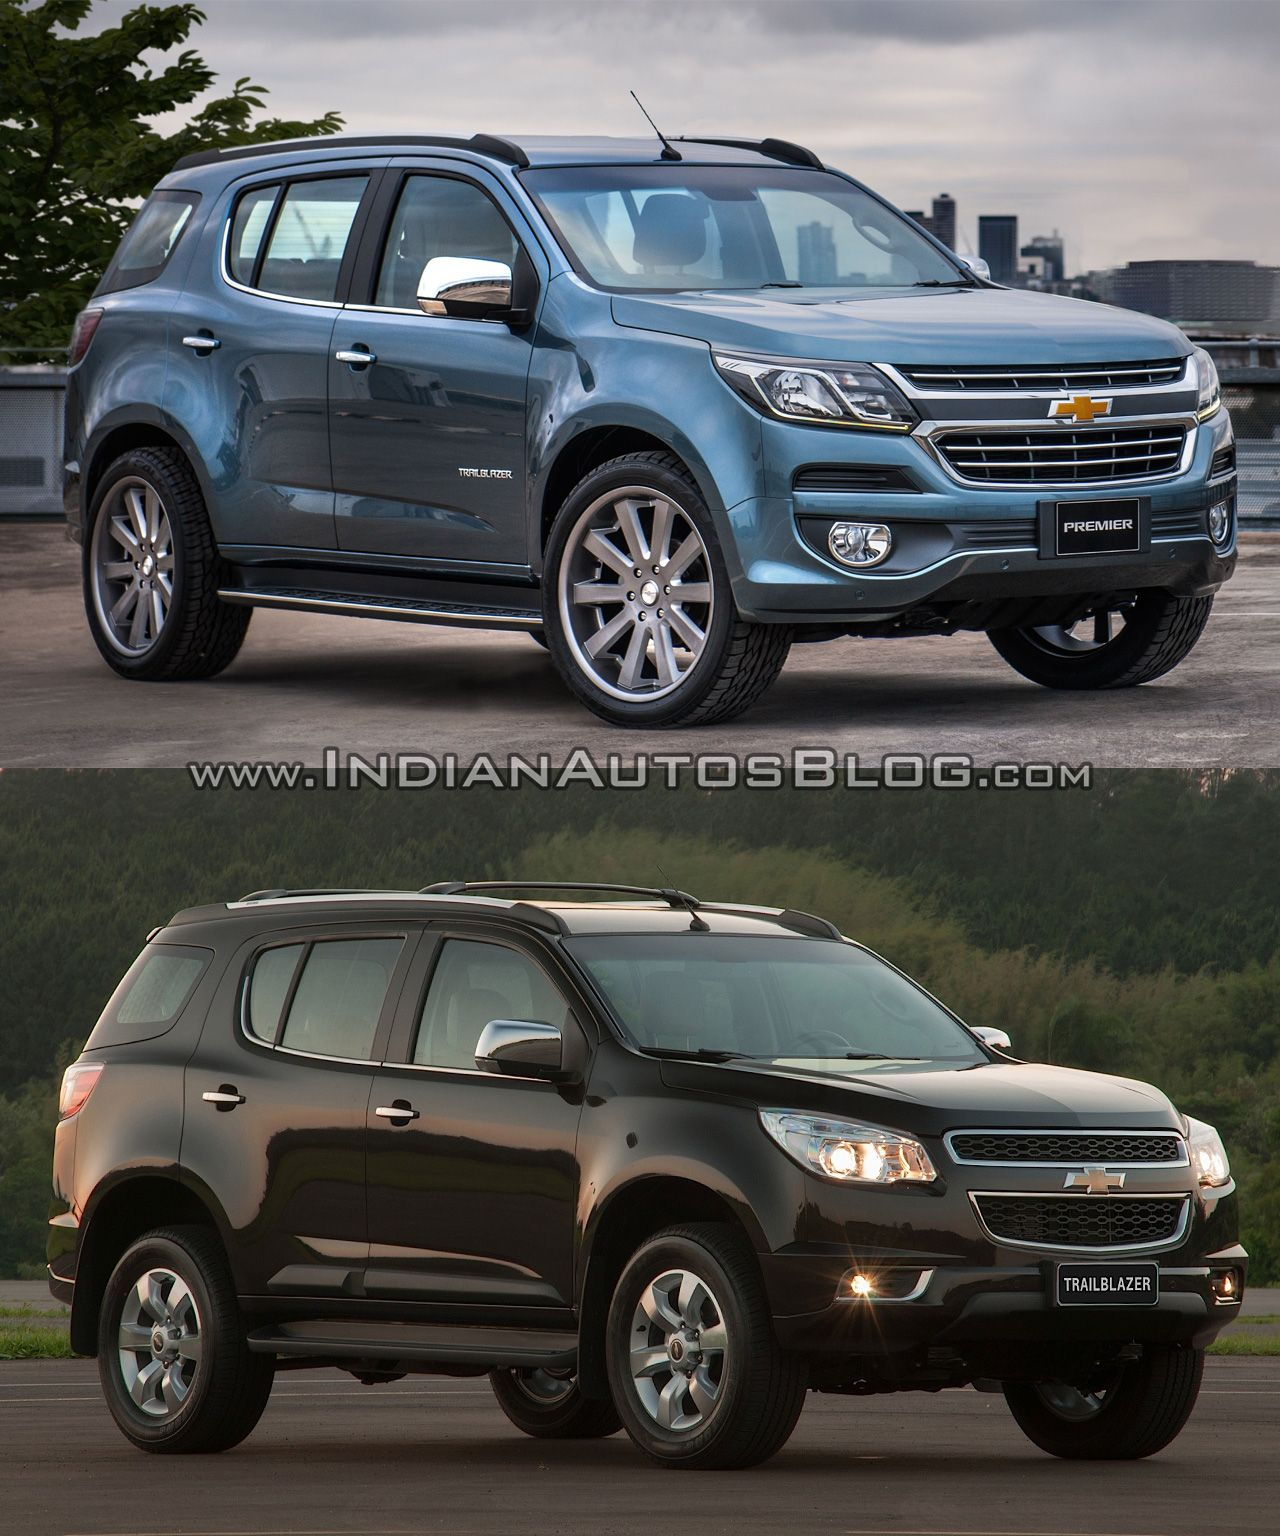 Chevrolet Trailblazer Premier Facelift Vs Older Model Em 2020